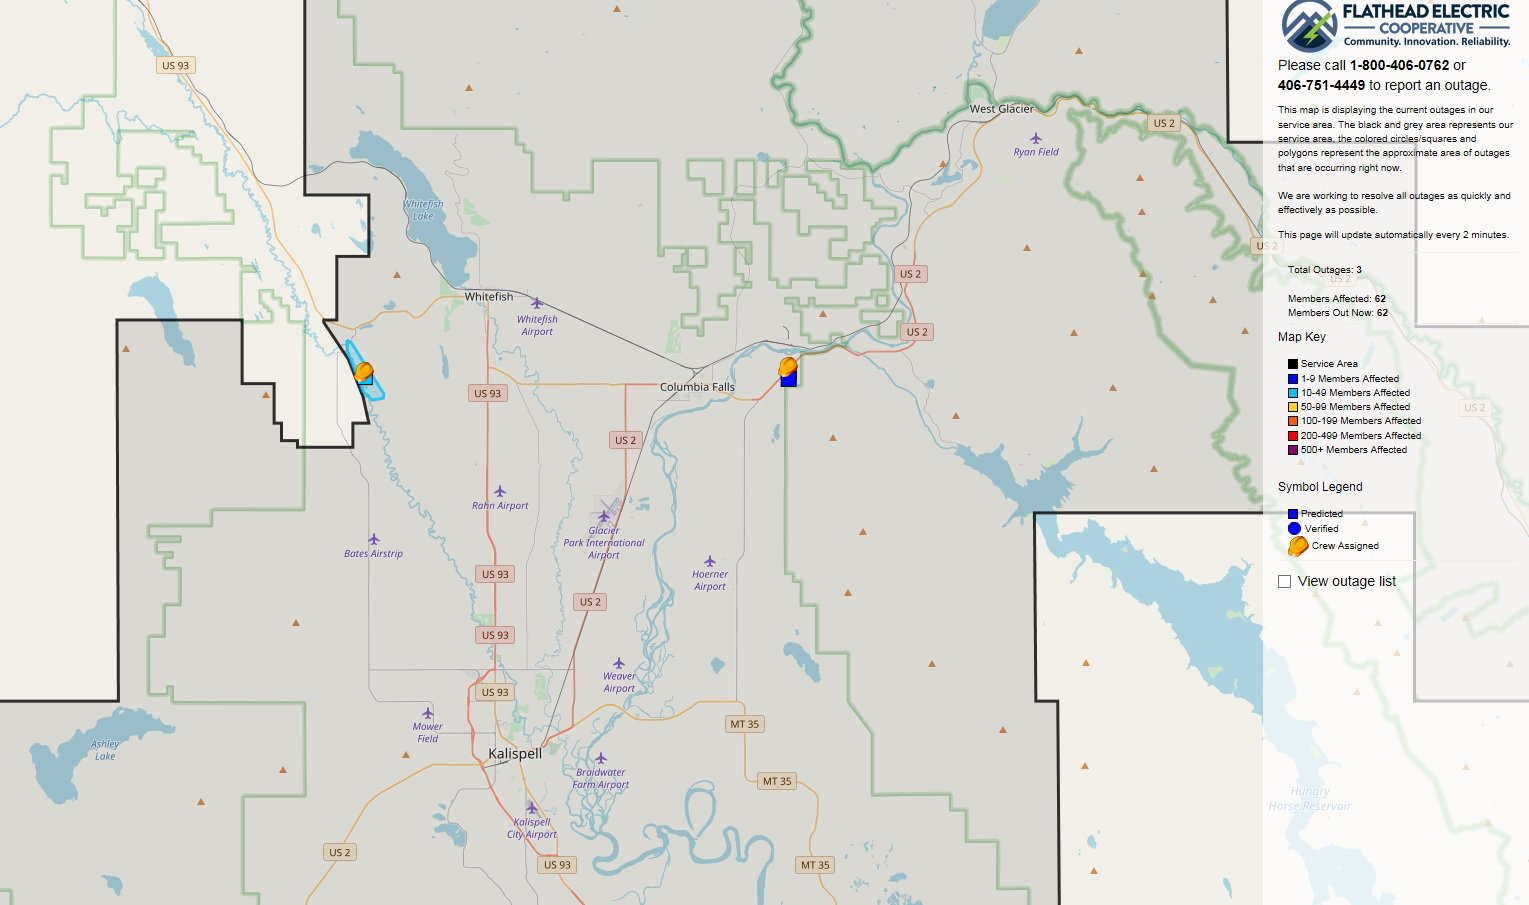 Flathead Electric Power Outage Map.Erin Yost On Twitter A Few Power Outages Around Western Montana